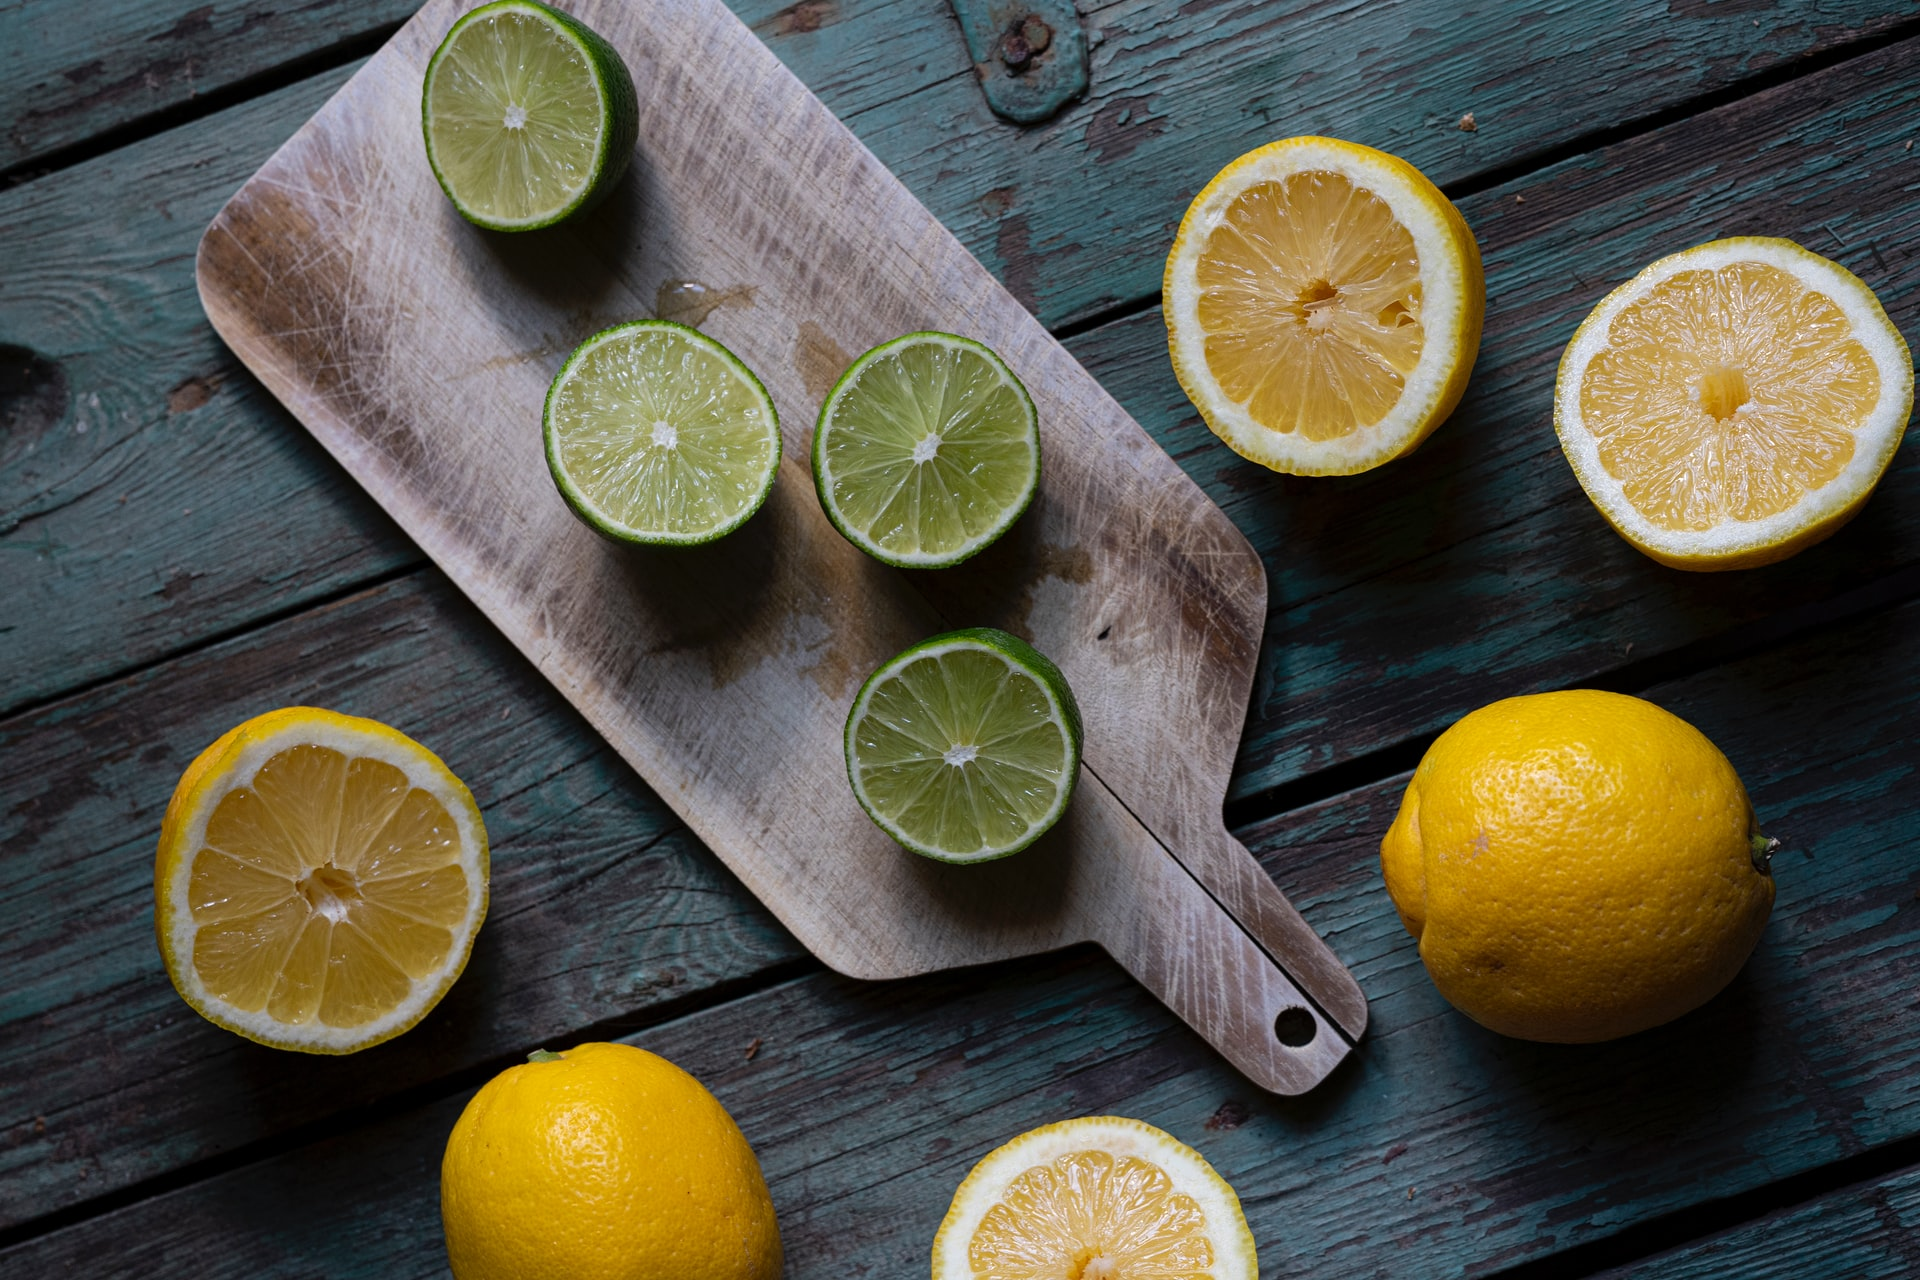 citrus fruits on board